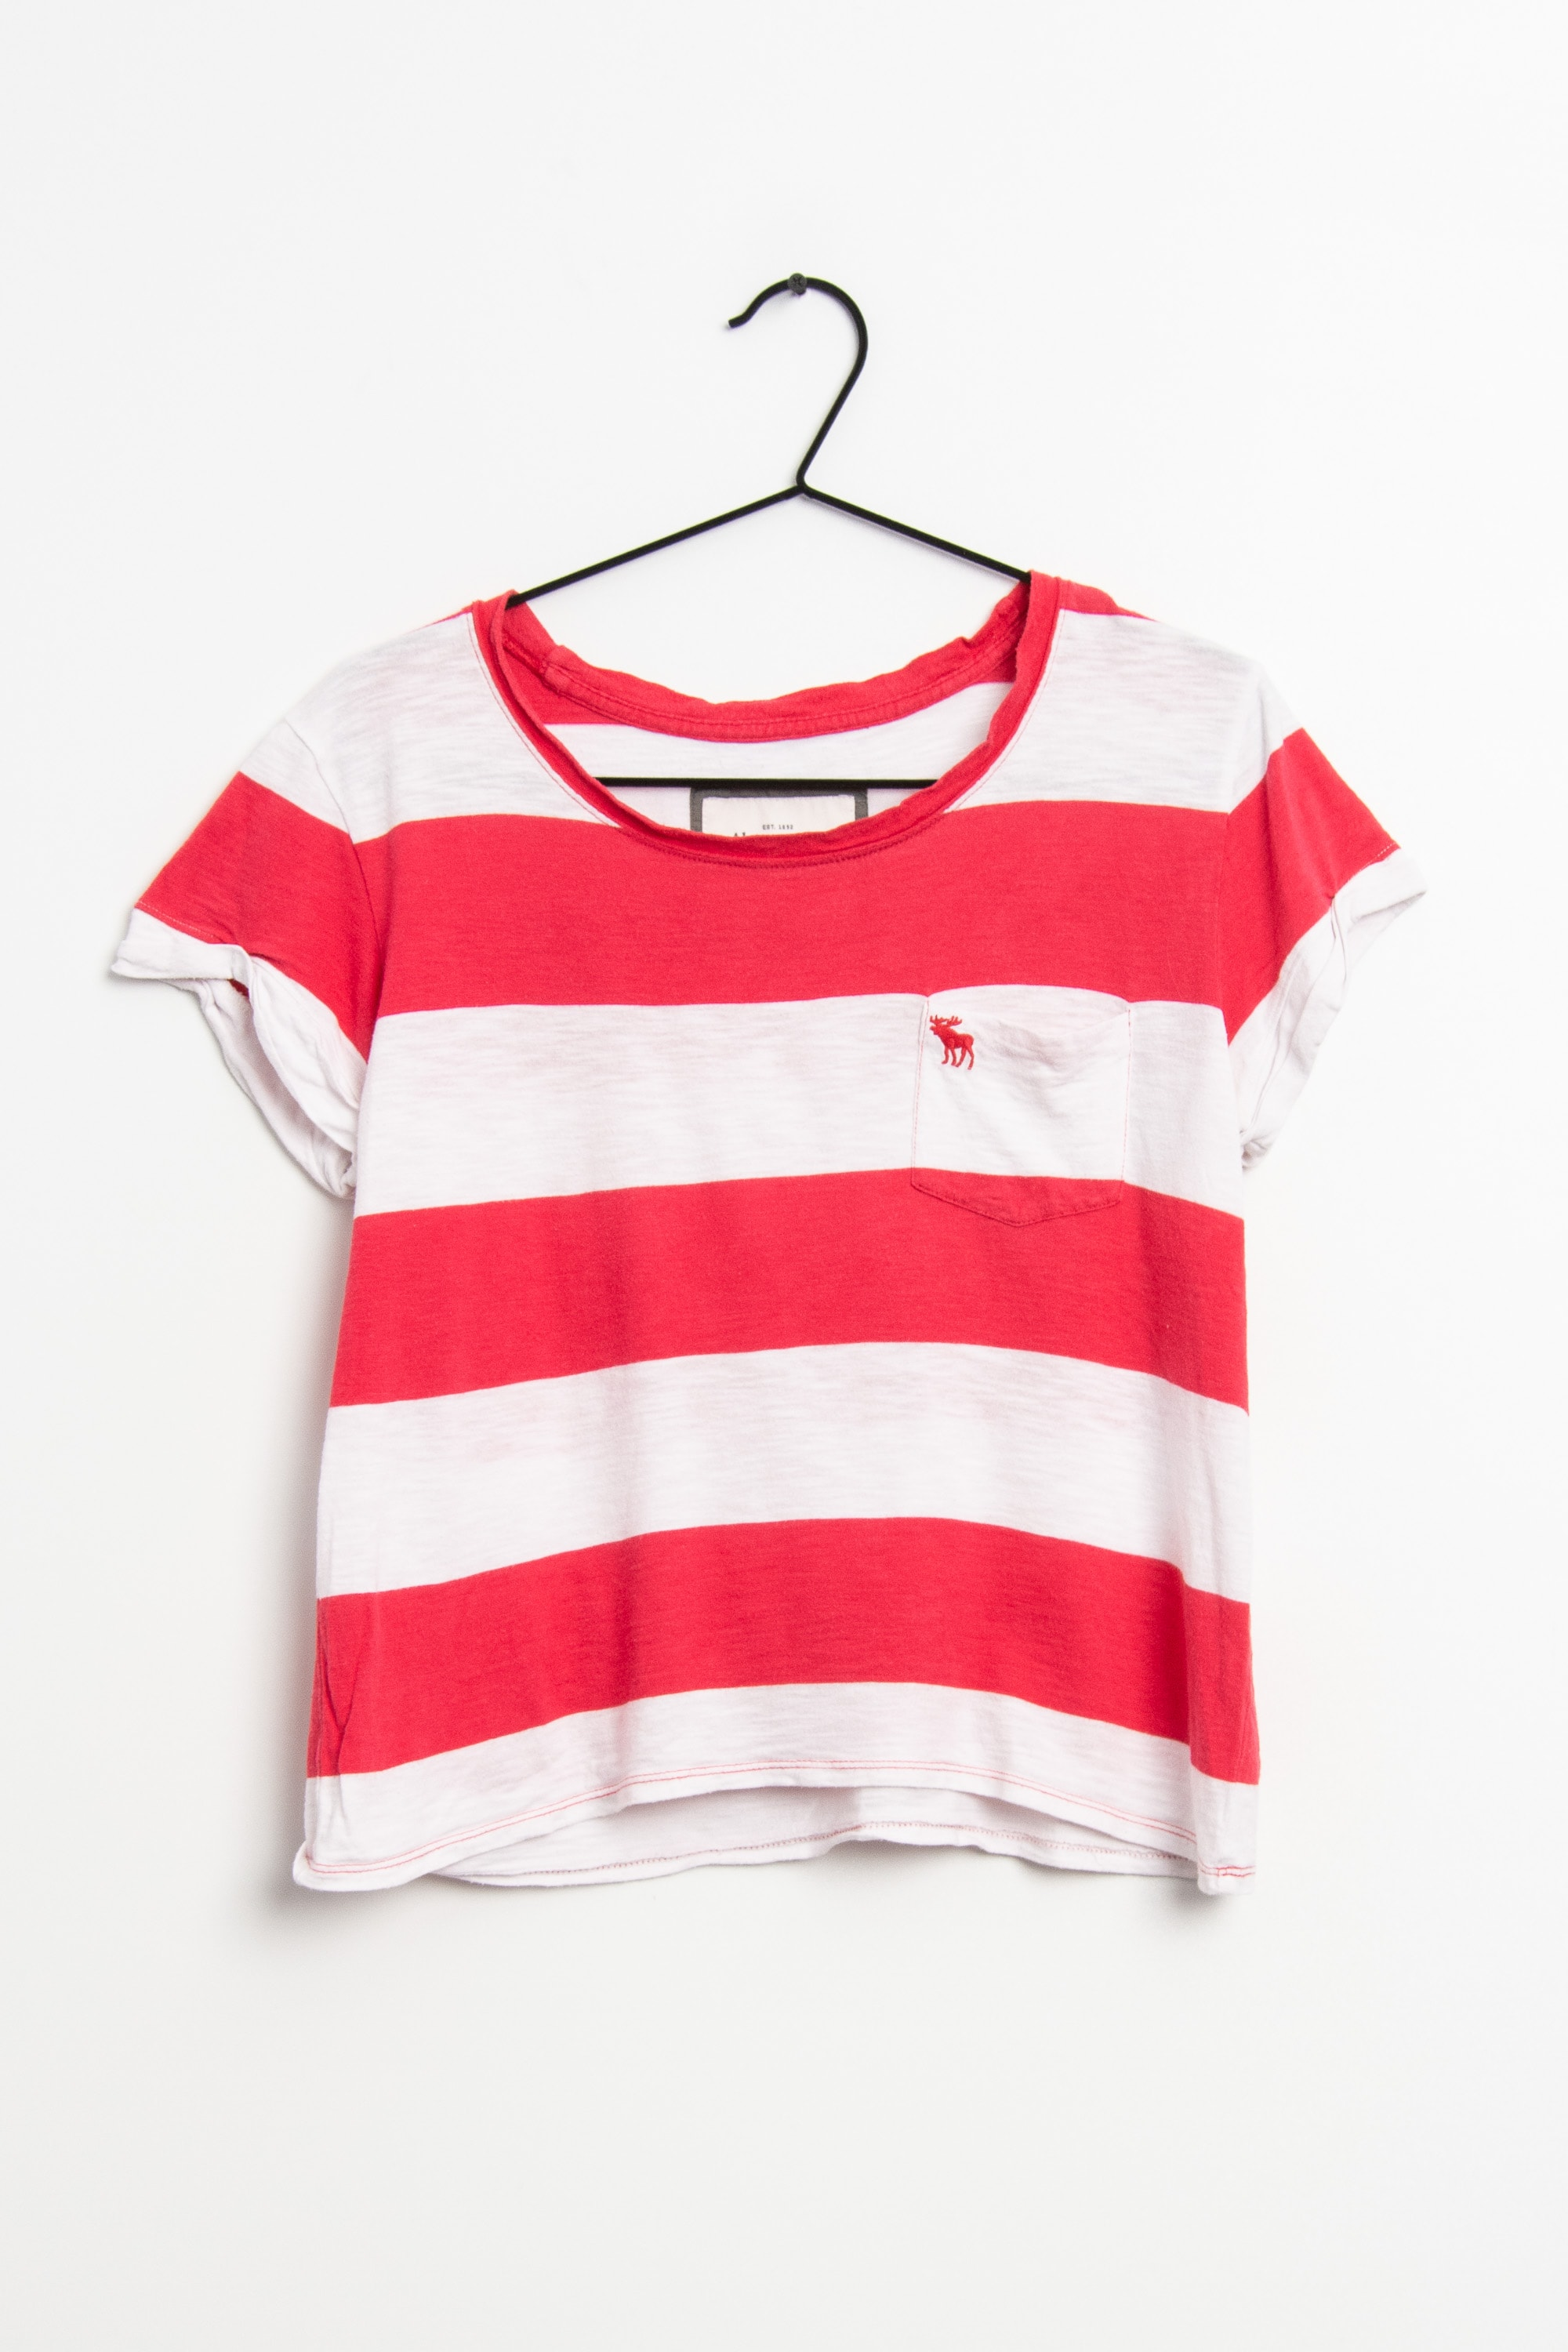 Abercrombie & Fitch T-Shirt Rot Gr.M